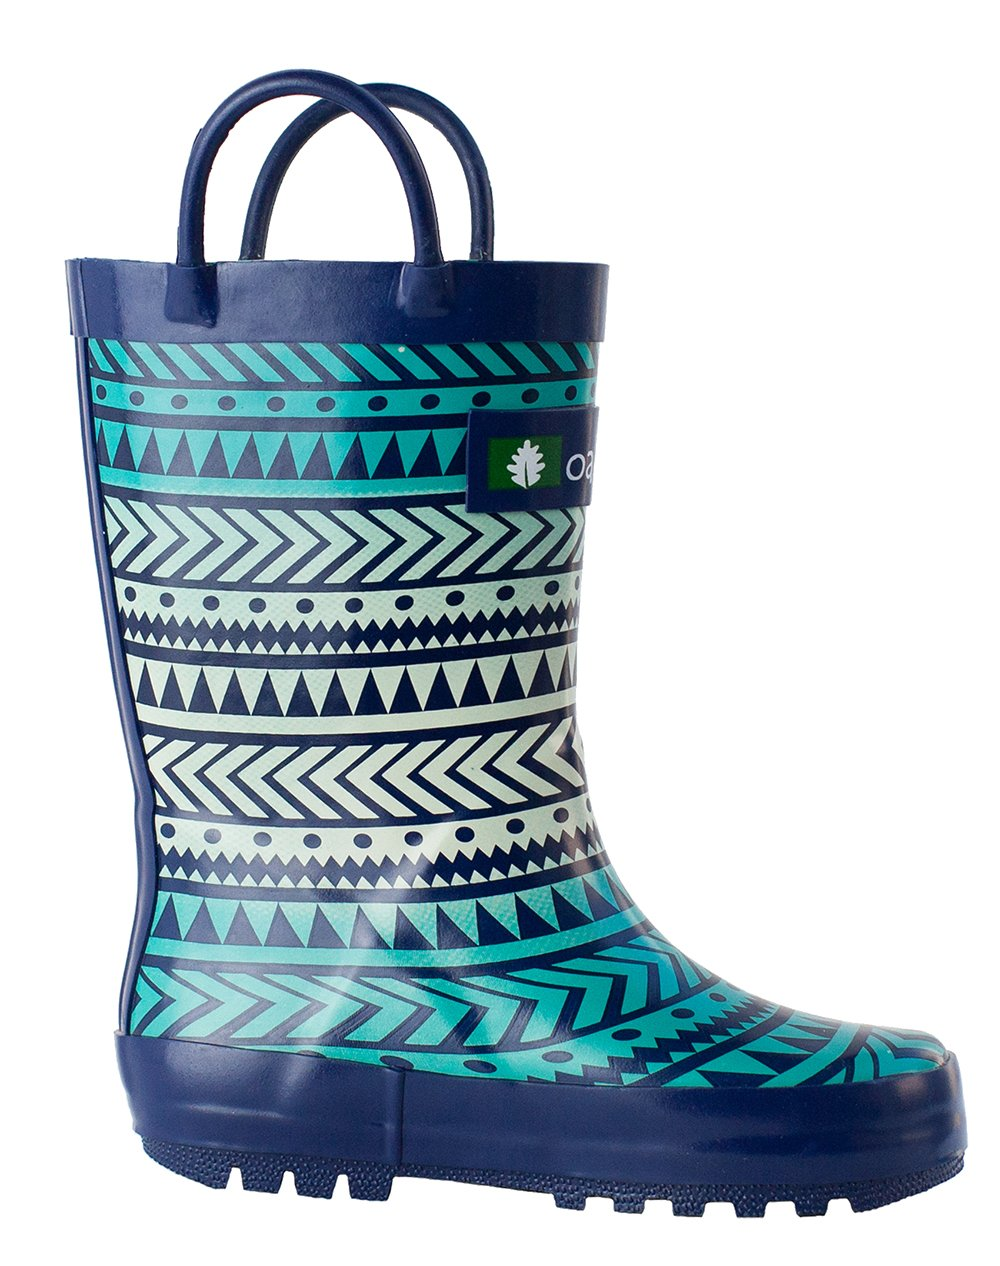 Oakiwear Kids Rubber Rain Boots with Easy-On Handles, Tribal, 4T US Toddler